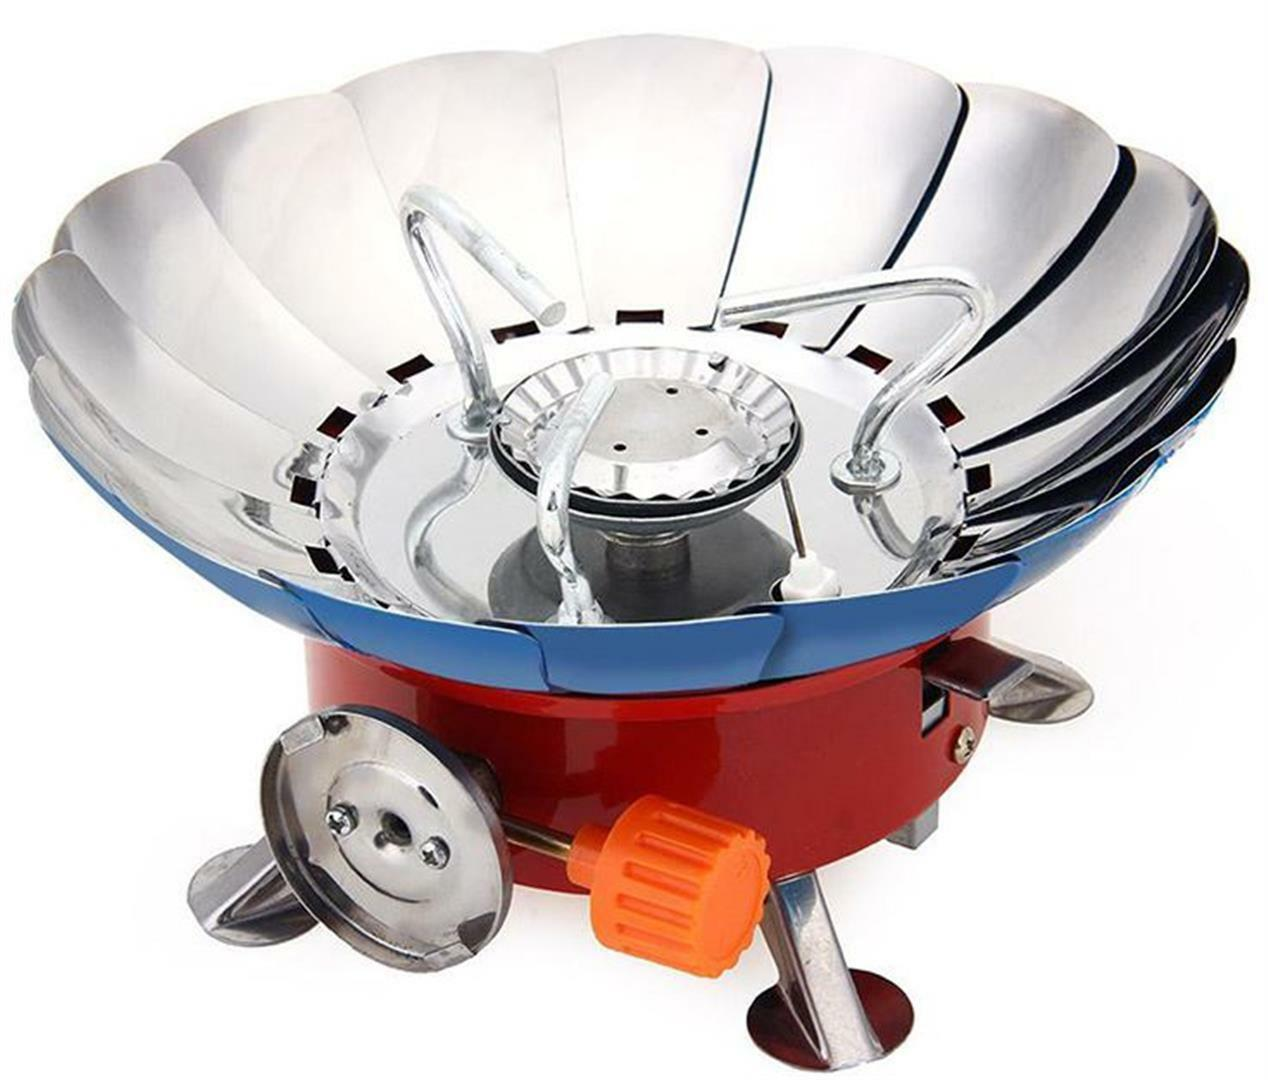 Butane Gas Stove Portable Mini Windproof Outdoor Cooker 2800W with Storage Bag